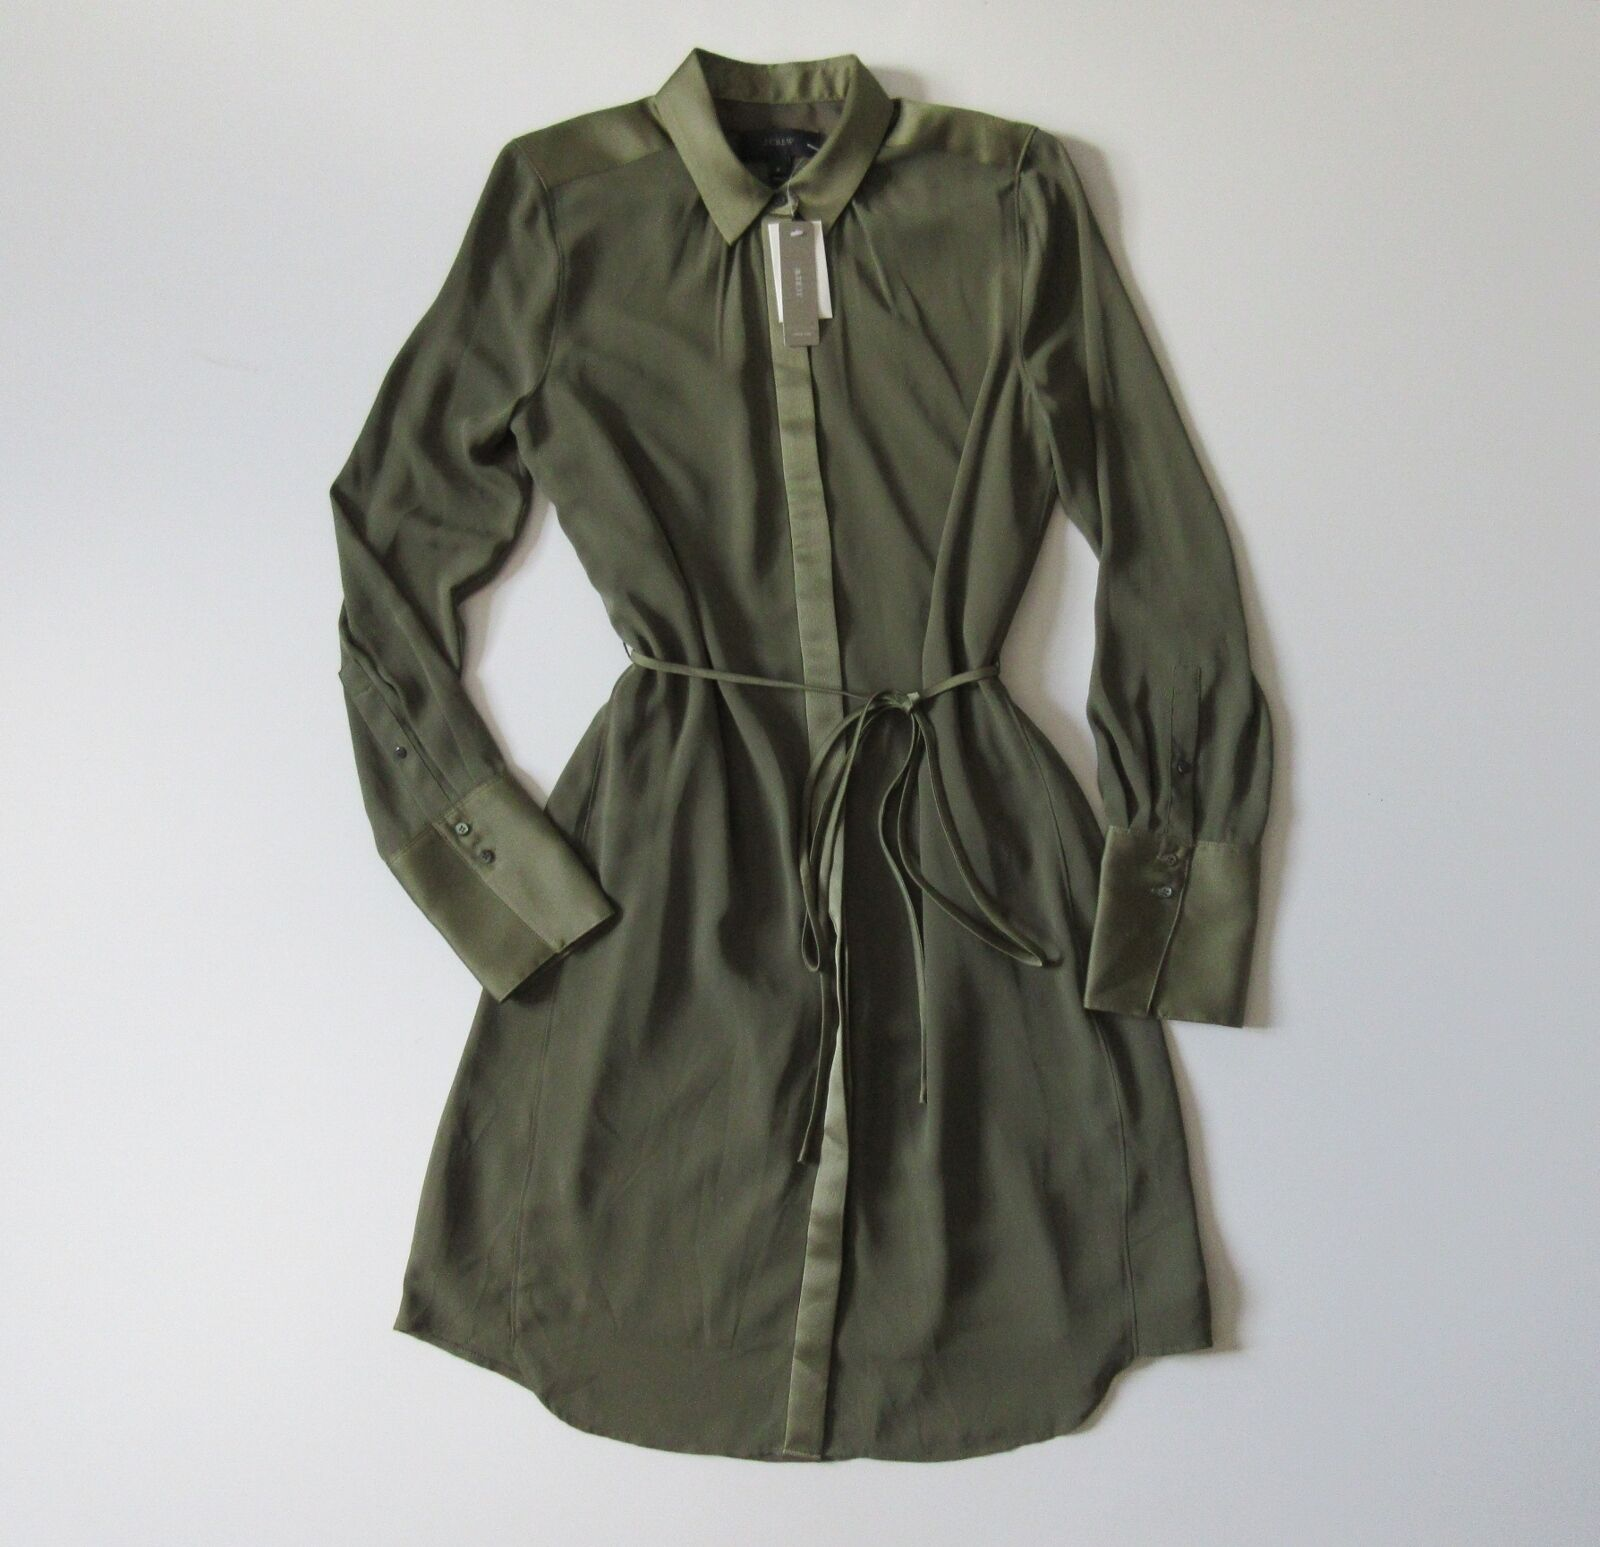 NWT J.Crew Tuscan Olive Green Satin Trim Crepe Button Down Down Down Belted Shirt Dress 6 ca2f2e